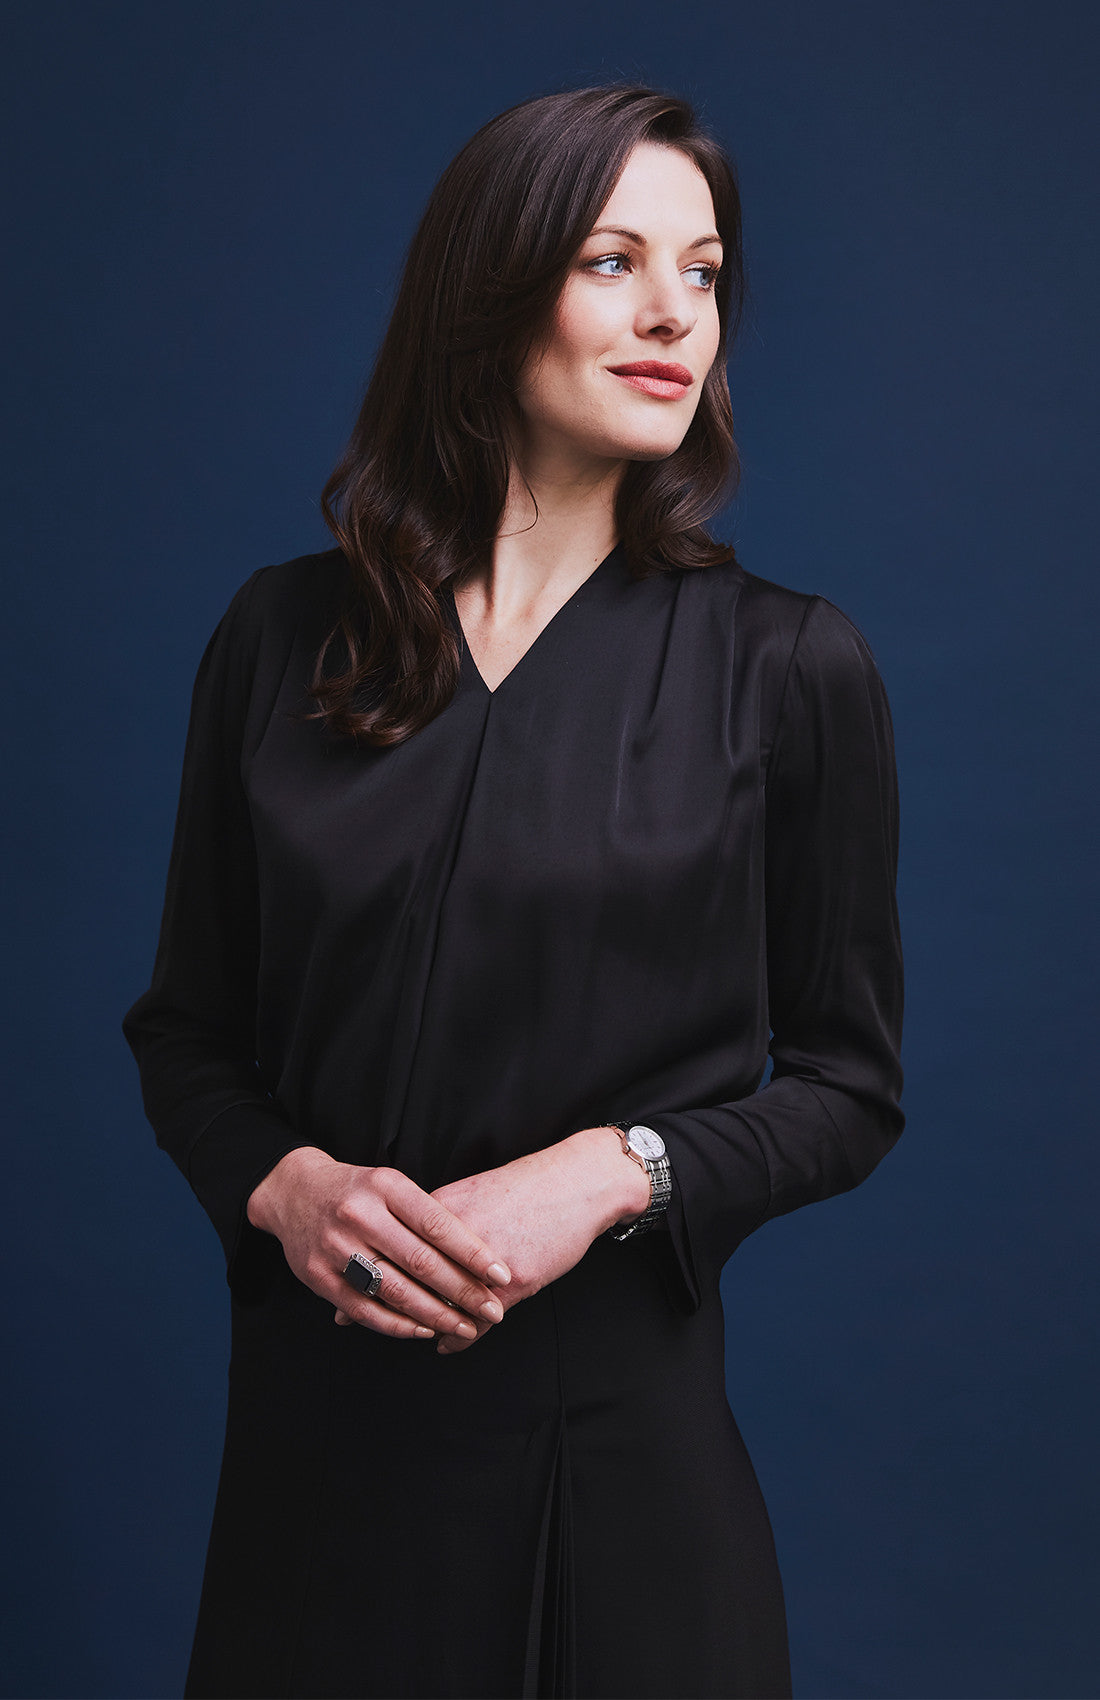 Black v-neck satin blouse for the office